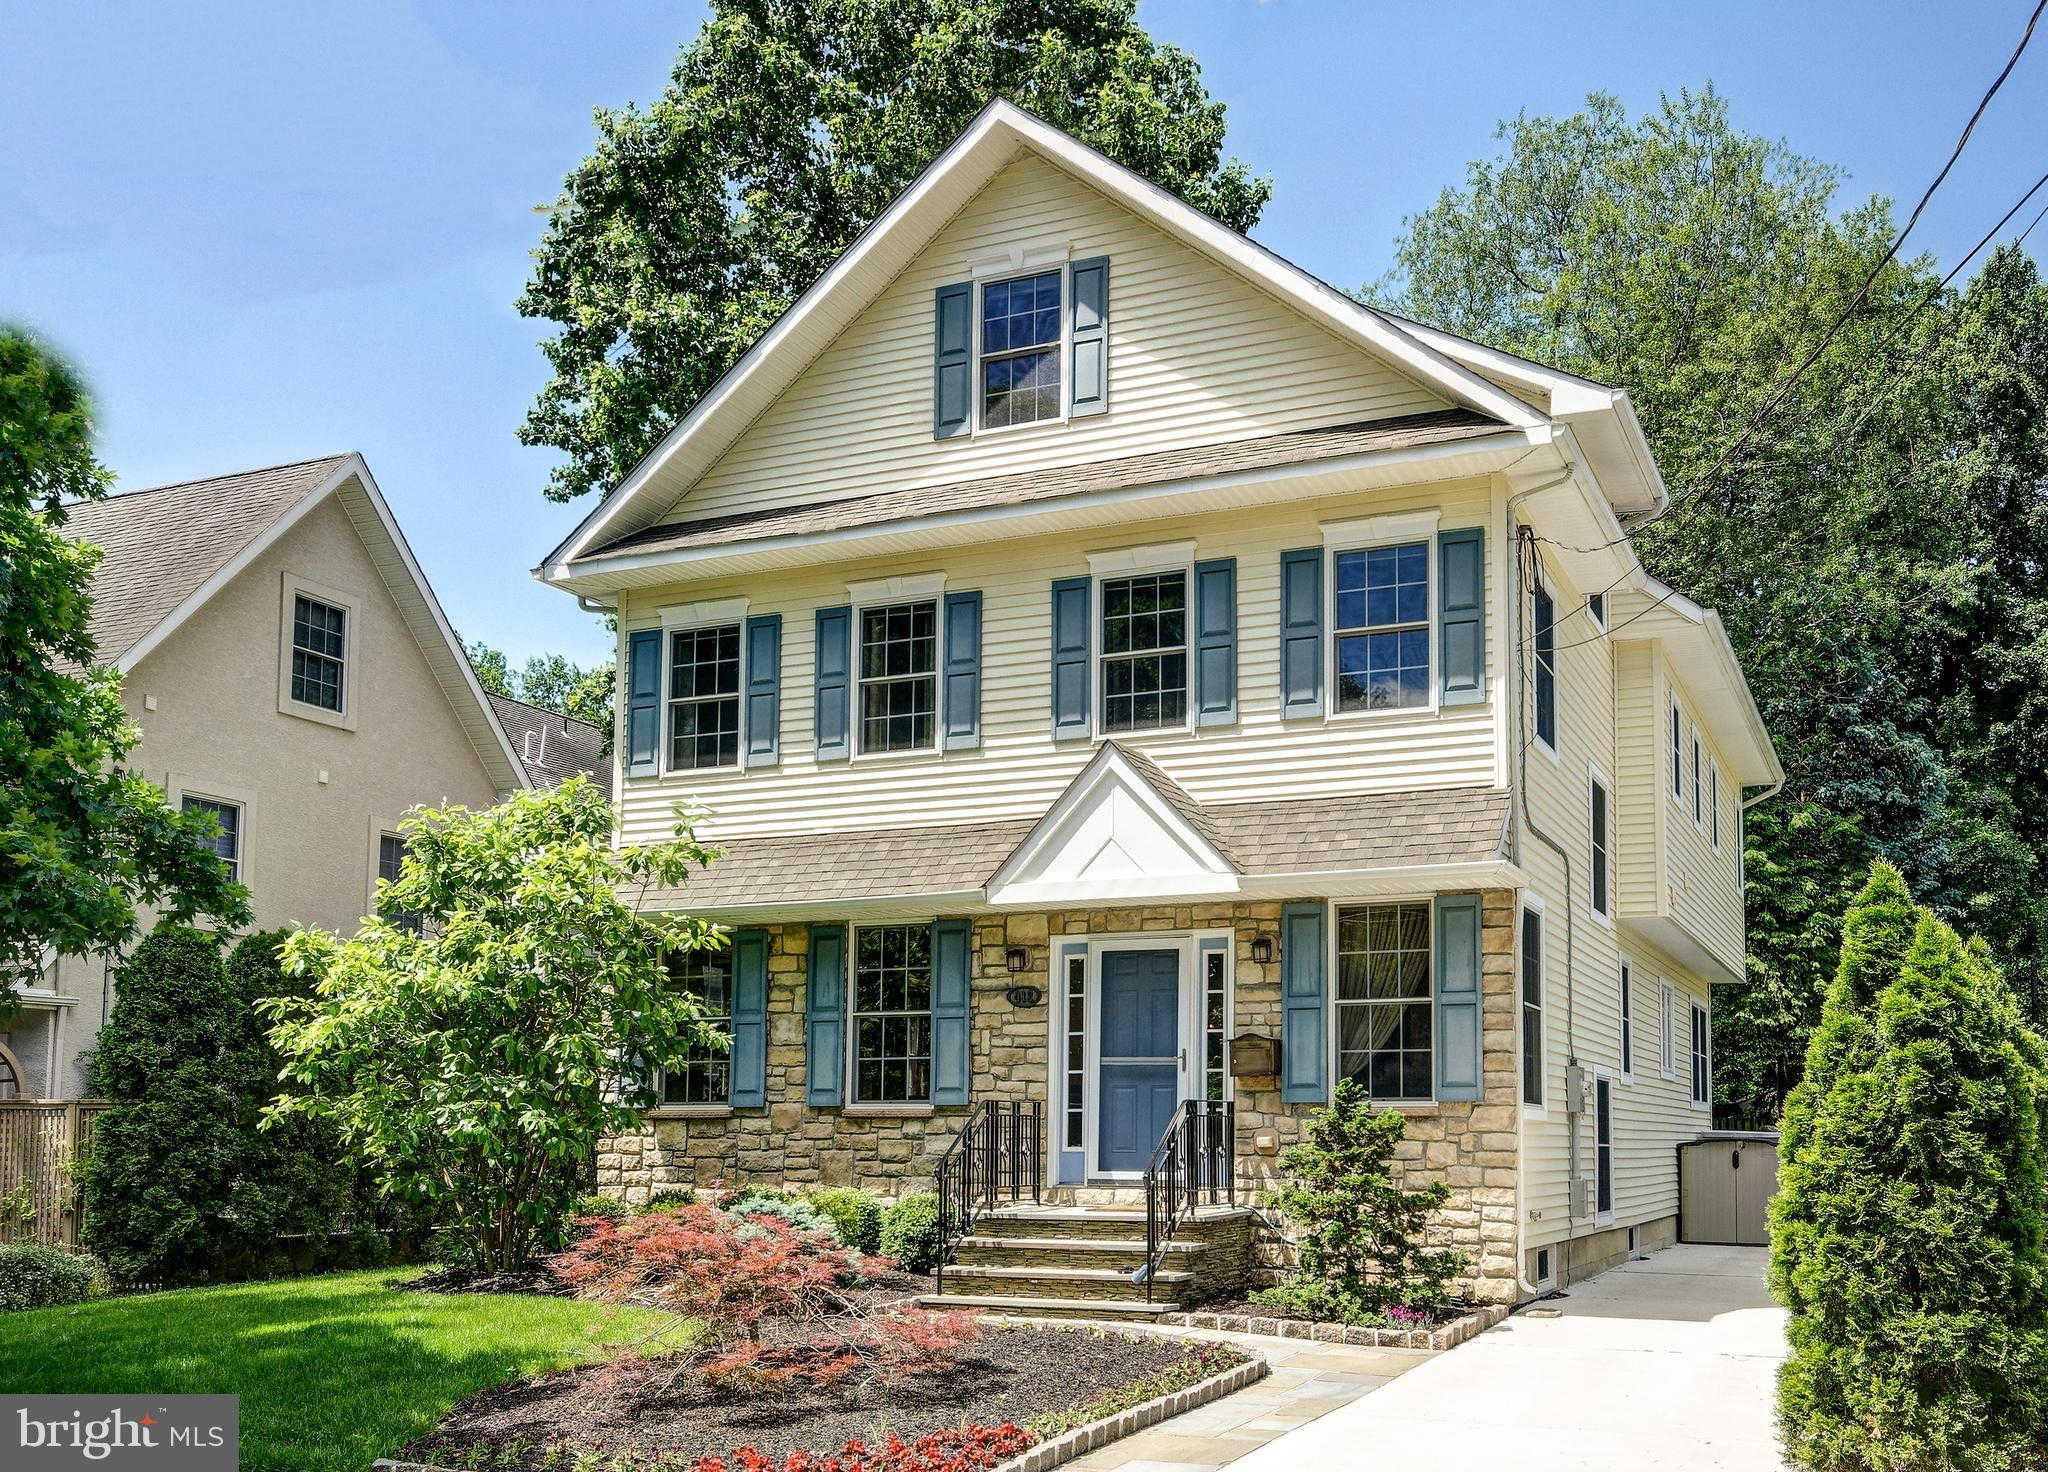 412 Spruce Street, Haddonfield, NJ 08033 now has a new price of $4,950!